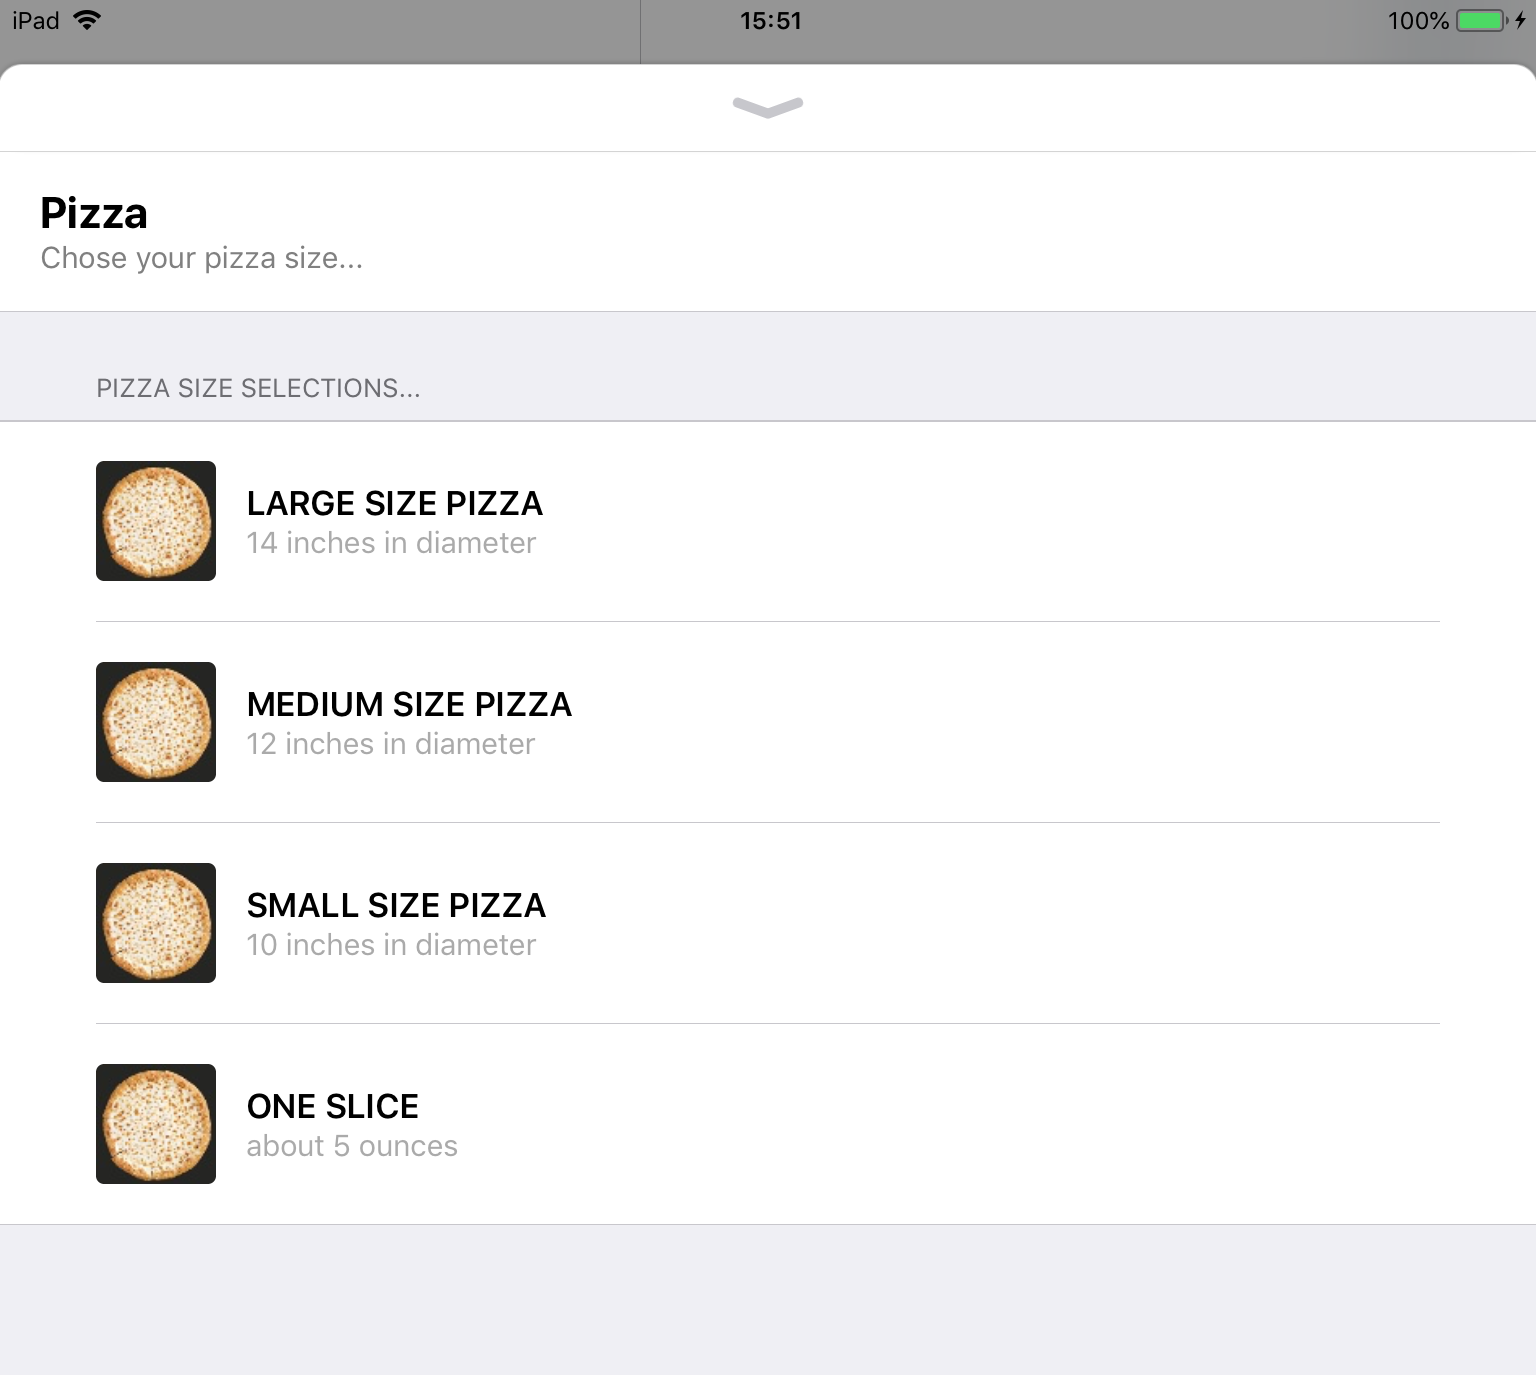 Example: Pizza size menu in Apple Business Chat